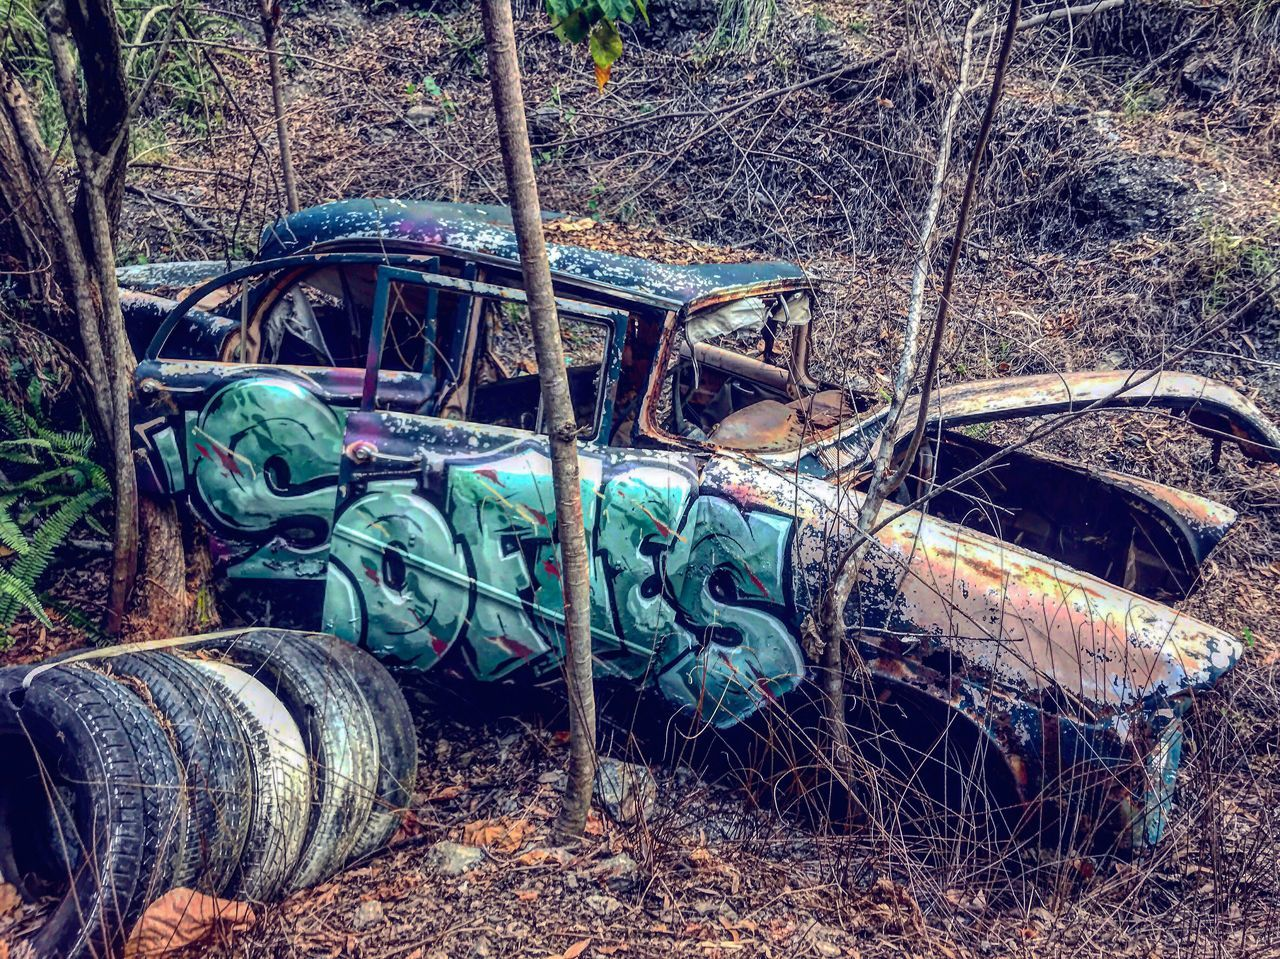 Lost in the wood 🍃🌲 Abandoned Obsolete Damaged Transportation Run-down Bad Condition Mode Of Transport Deterioration Land Vehicle Destruction No People Wreck Rusty Day Outdoors Forest Tree Discarded Decline Nature